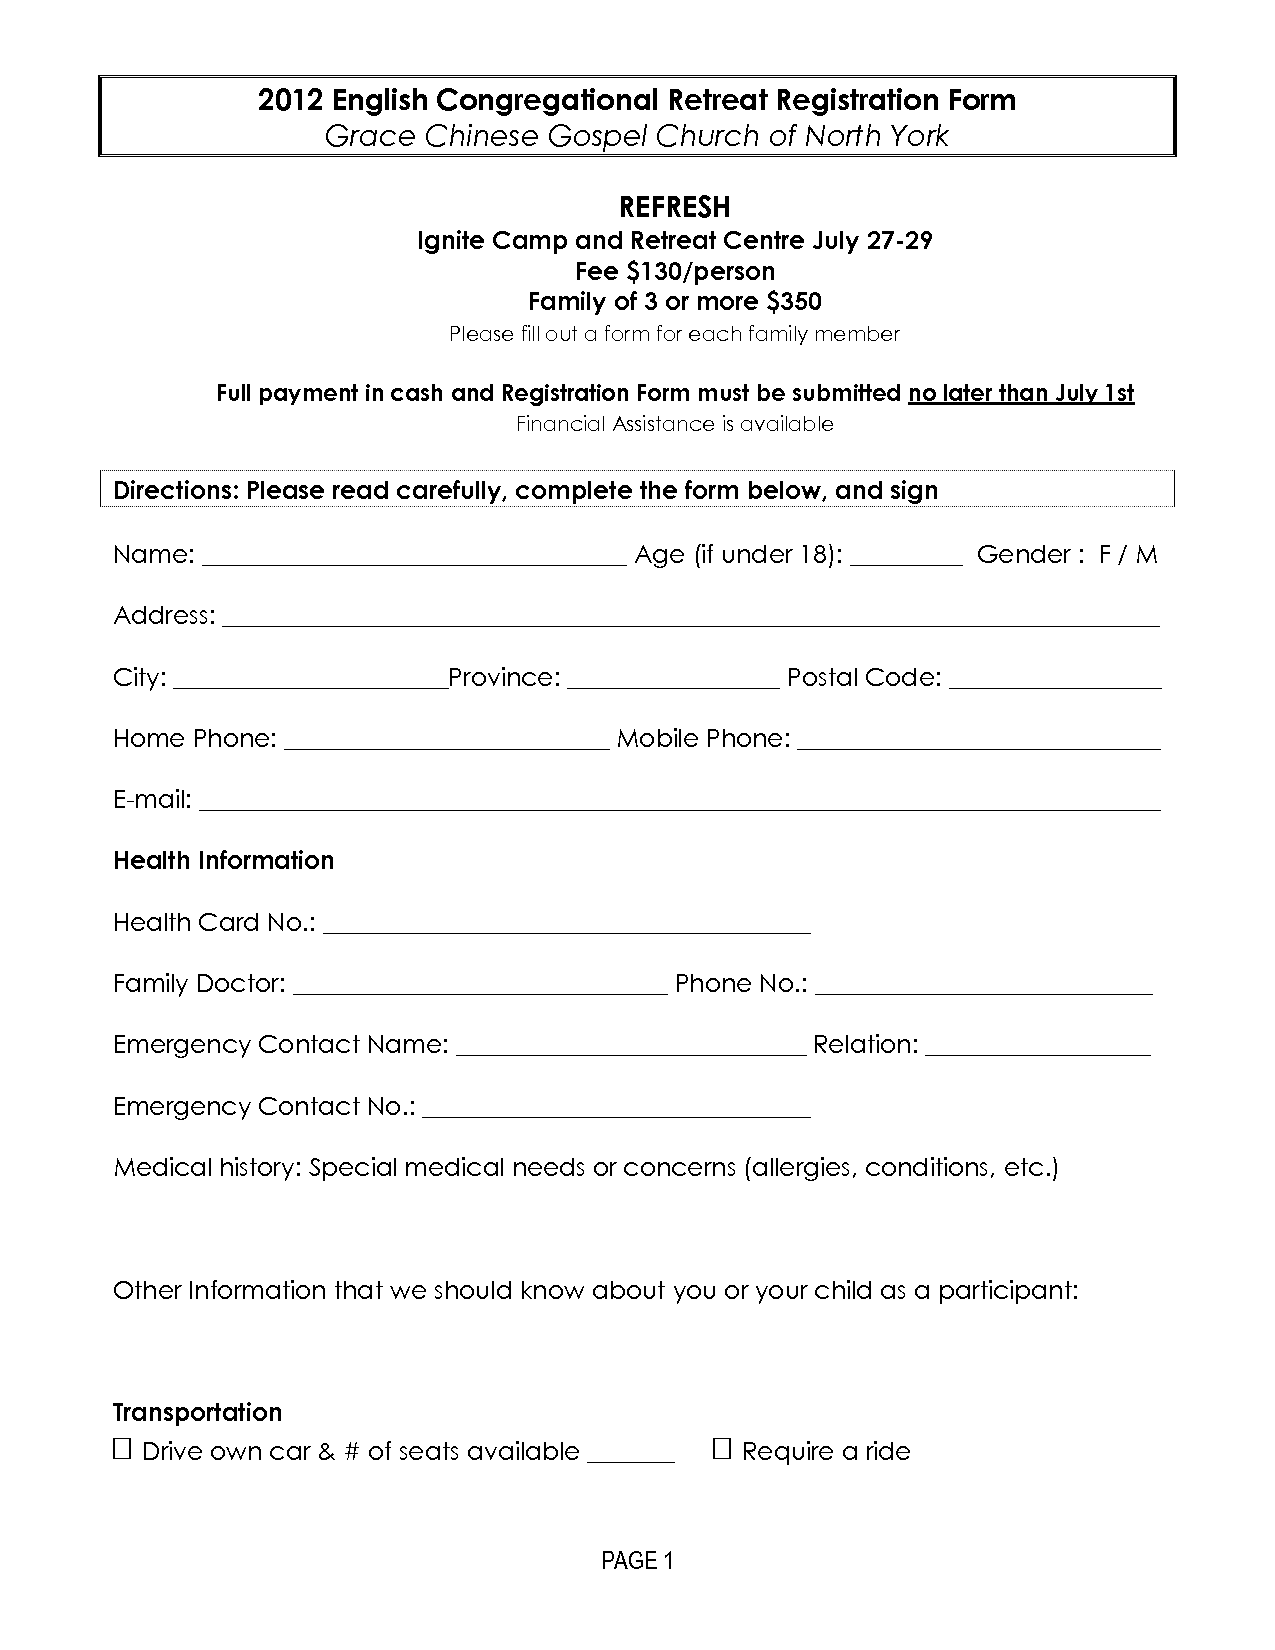 RetreatRegistrationForms  Retreat Registration Form Template